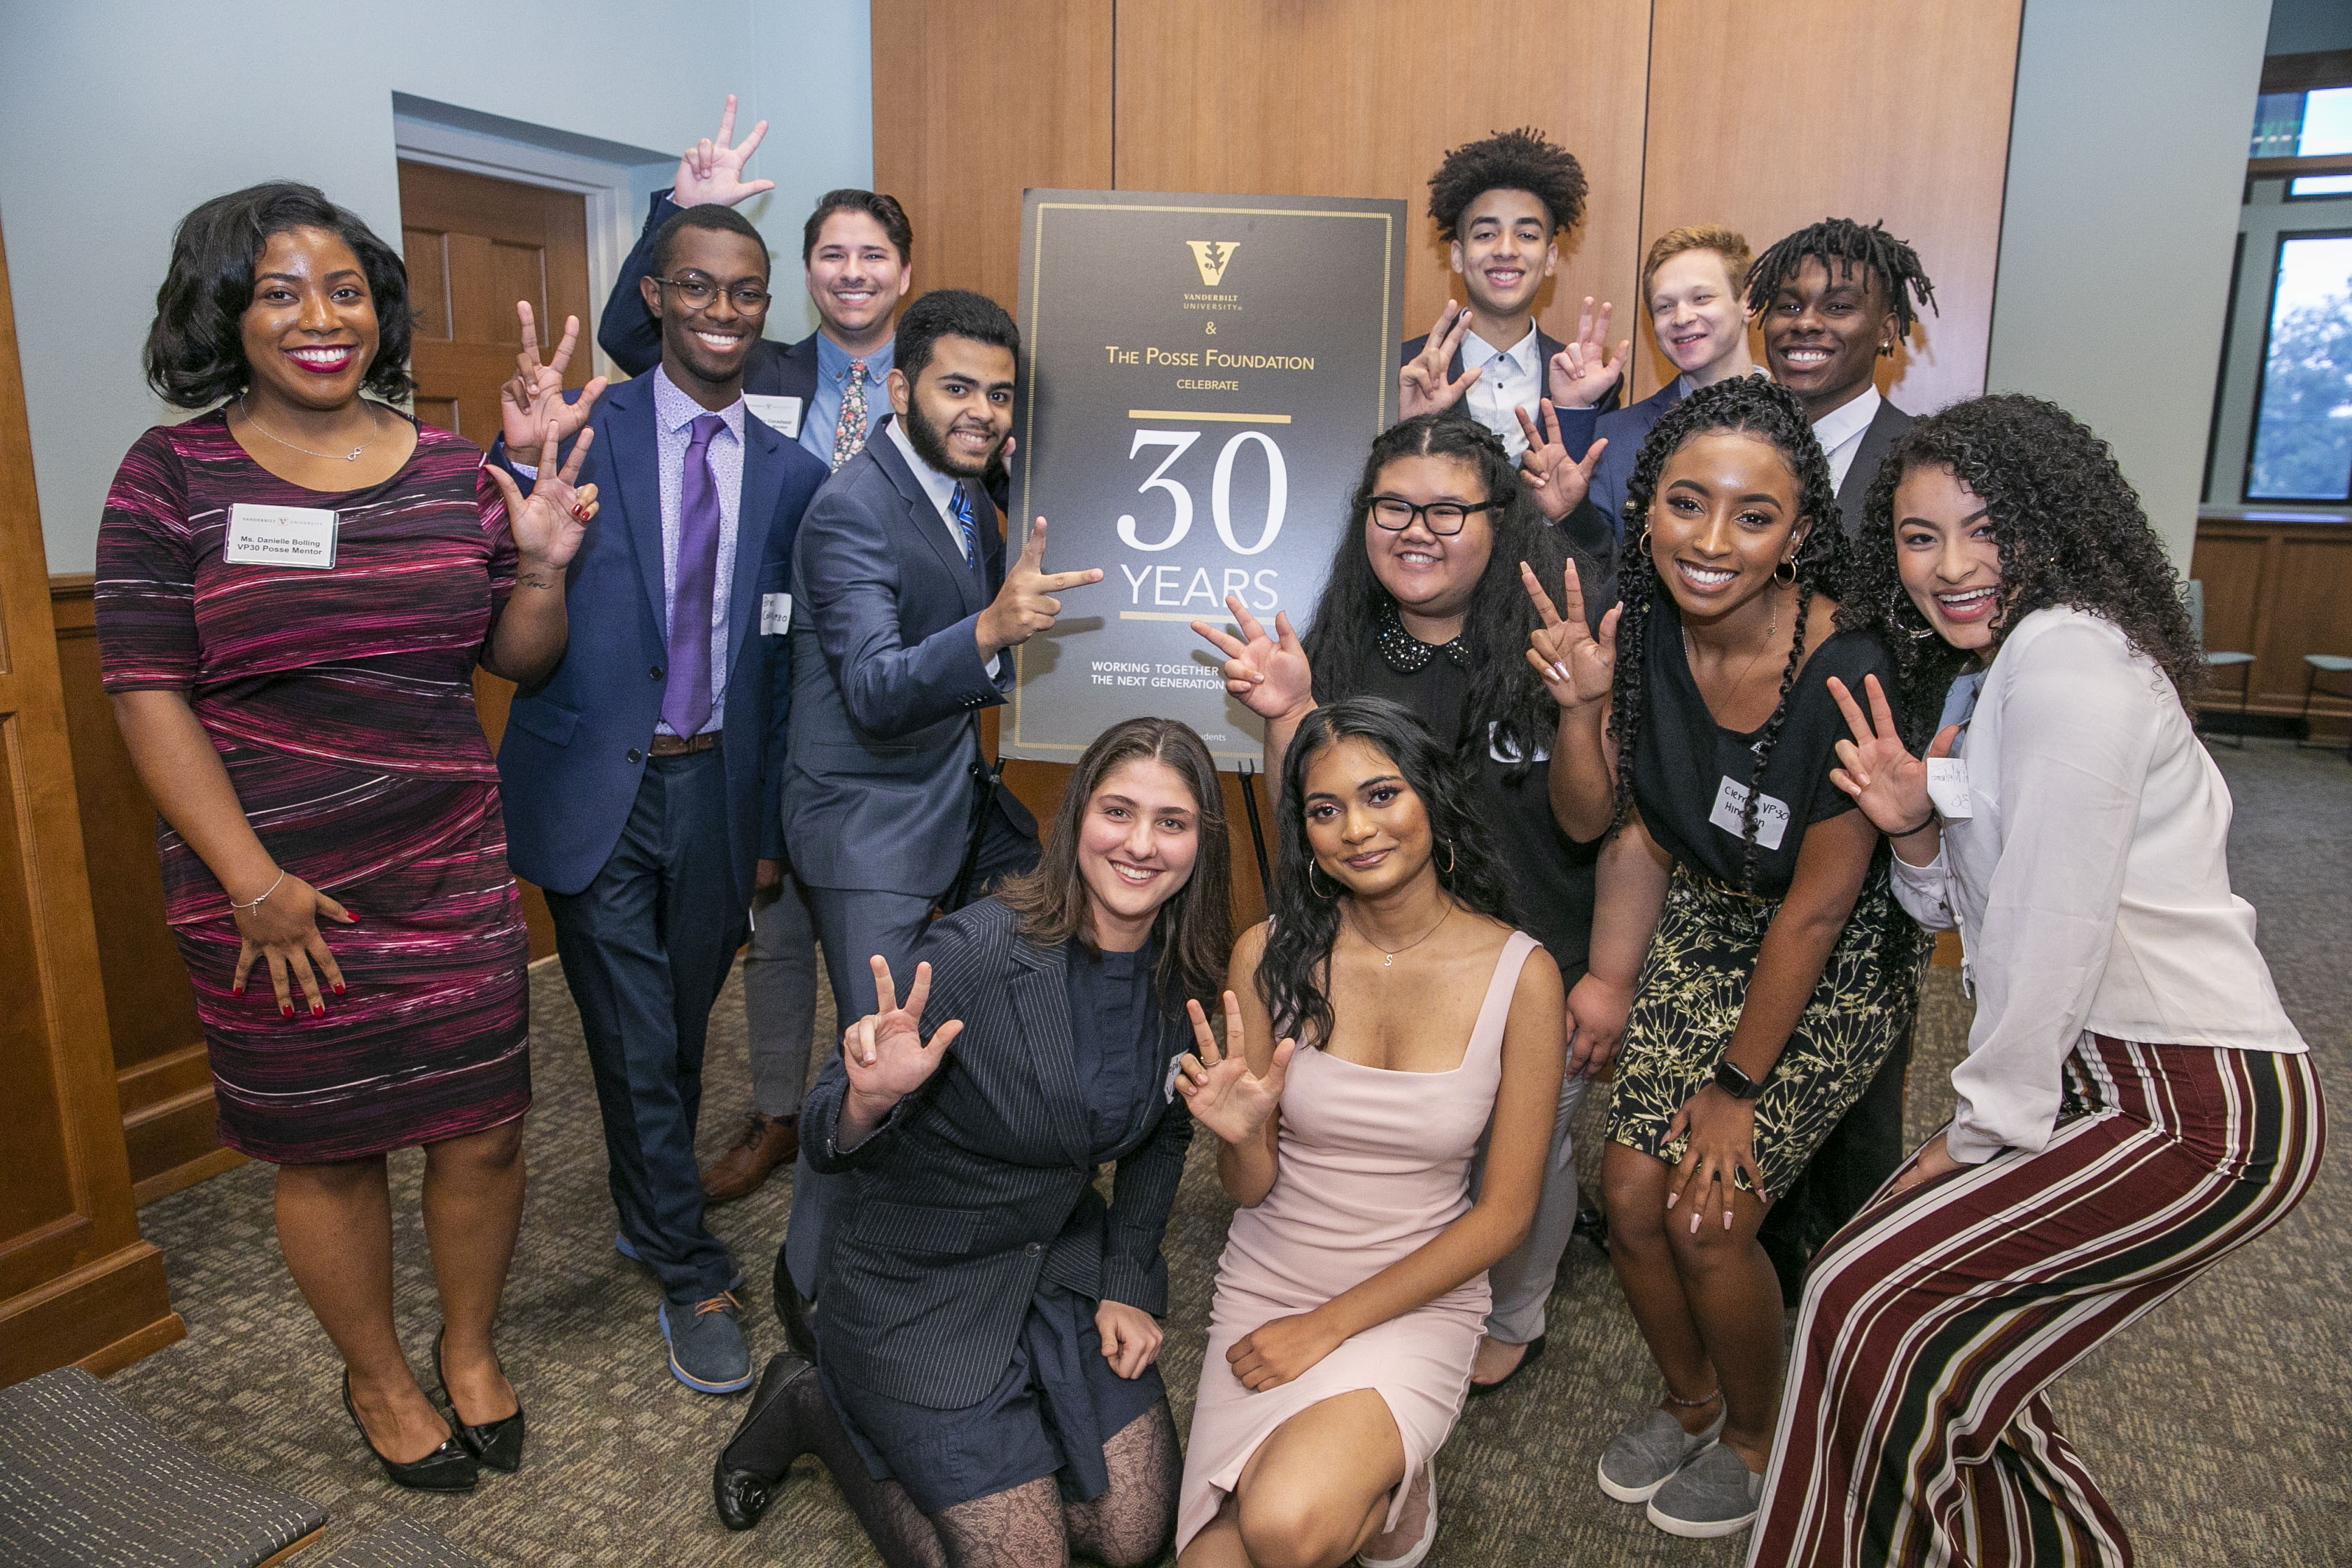 Posse Scholars program celebrates 30th anniversary. (Anne Rayner/Vanderbilt)